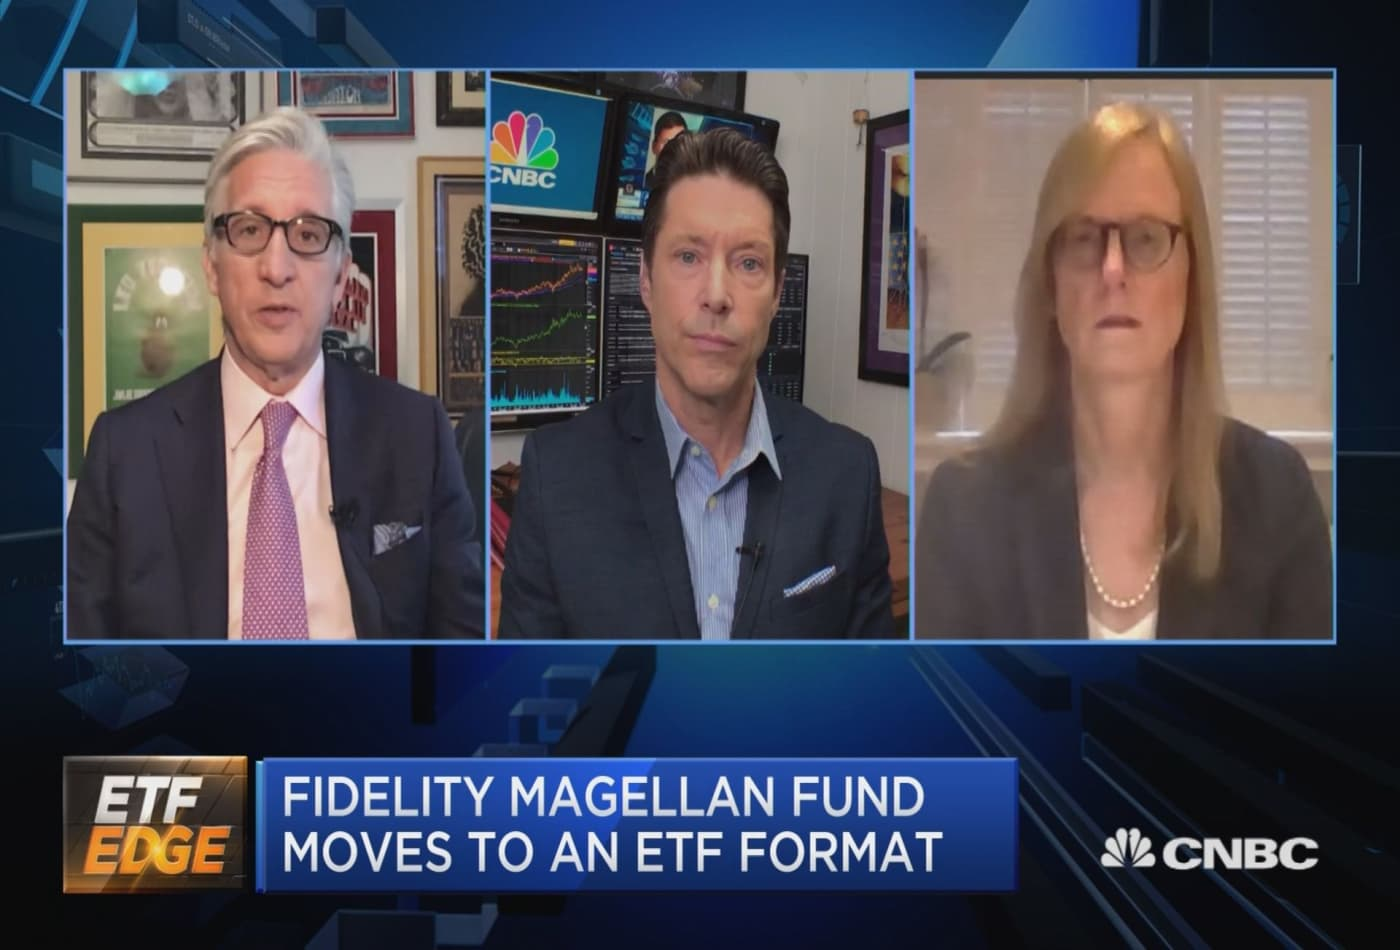 Fidelity's popular Magellan mutual fund moves to an ETF format. Industry pros talk impact